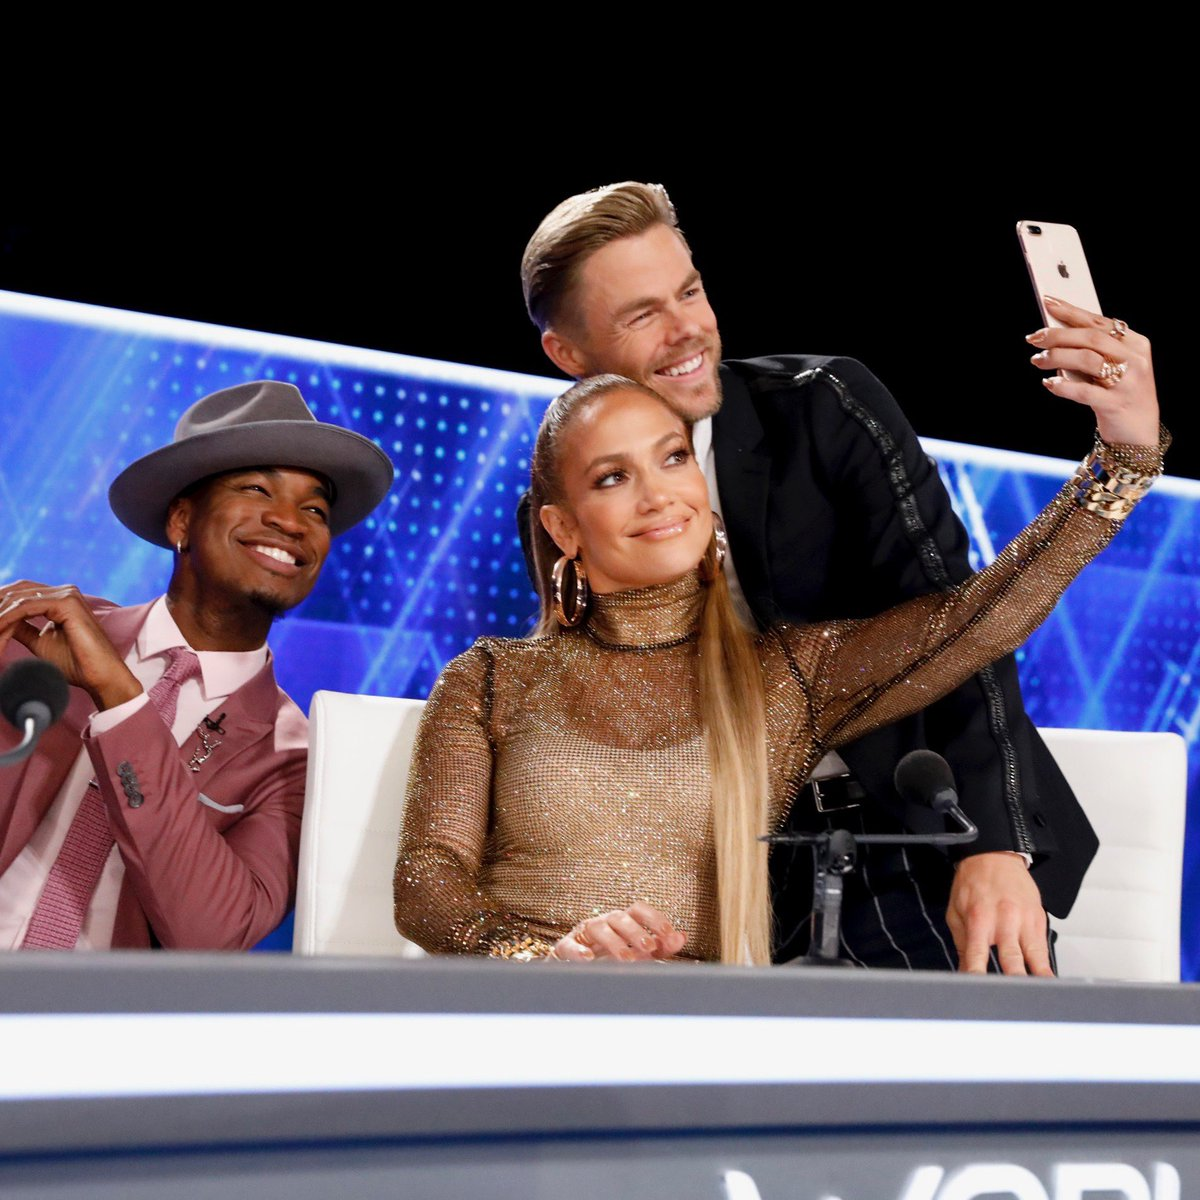 Teaching the boys how to selfie. ���� Are you joining us for @NBCWorldofDance? NOW on @nbc. https://t.co/1B4xntkxtd